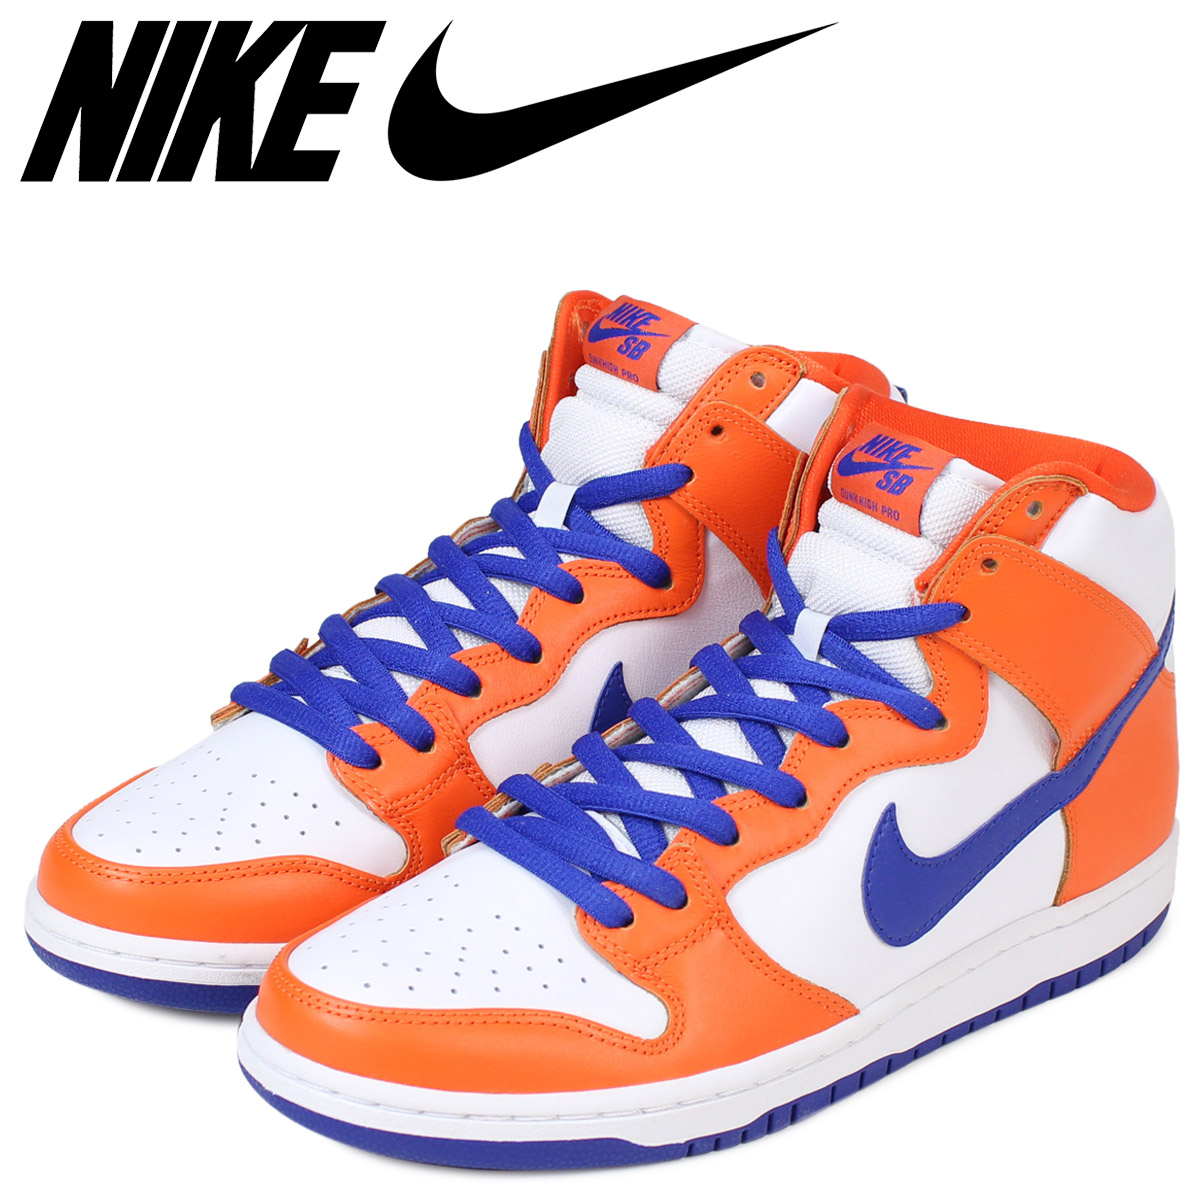 new concept d5d2e d3afb NIKE Nike SB dunk high sneakers DUNK HIGH TRD QS AH0471-841 DANNY SUPA men  ...